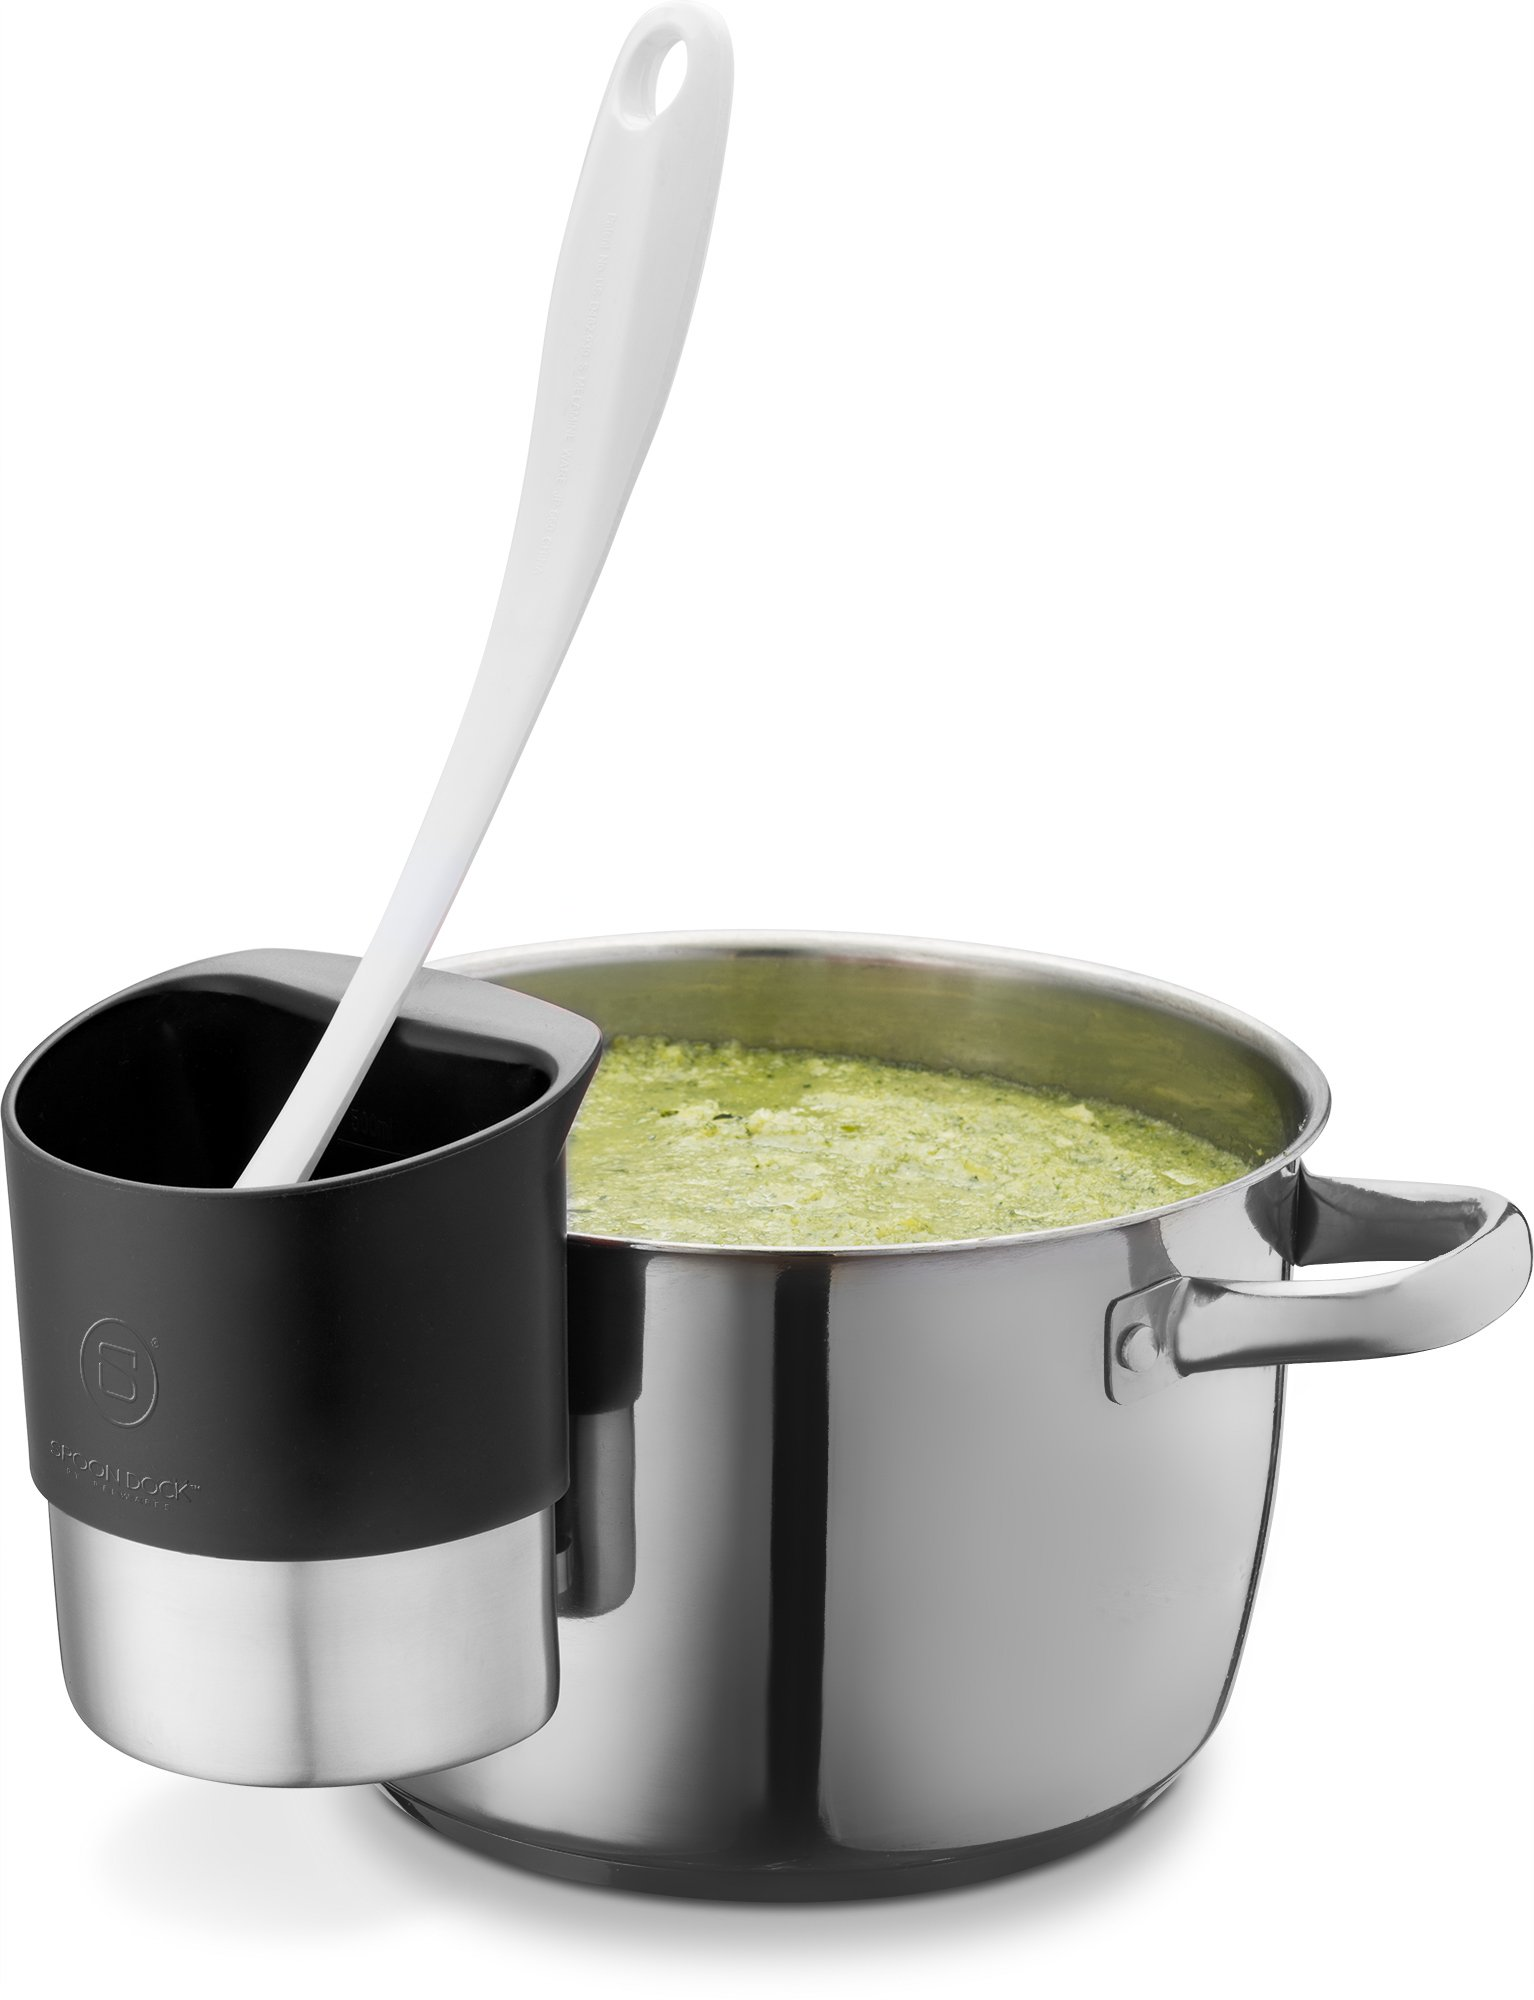 Spoon Rest Stainless Steel Spoon Dock Utensils - This Cup Hangs on Saucepans Pots Preparing Serving Food Without Creating a Mess - Use as a Measuring Cup, Mix, Pouring - Black